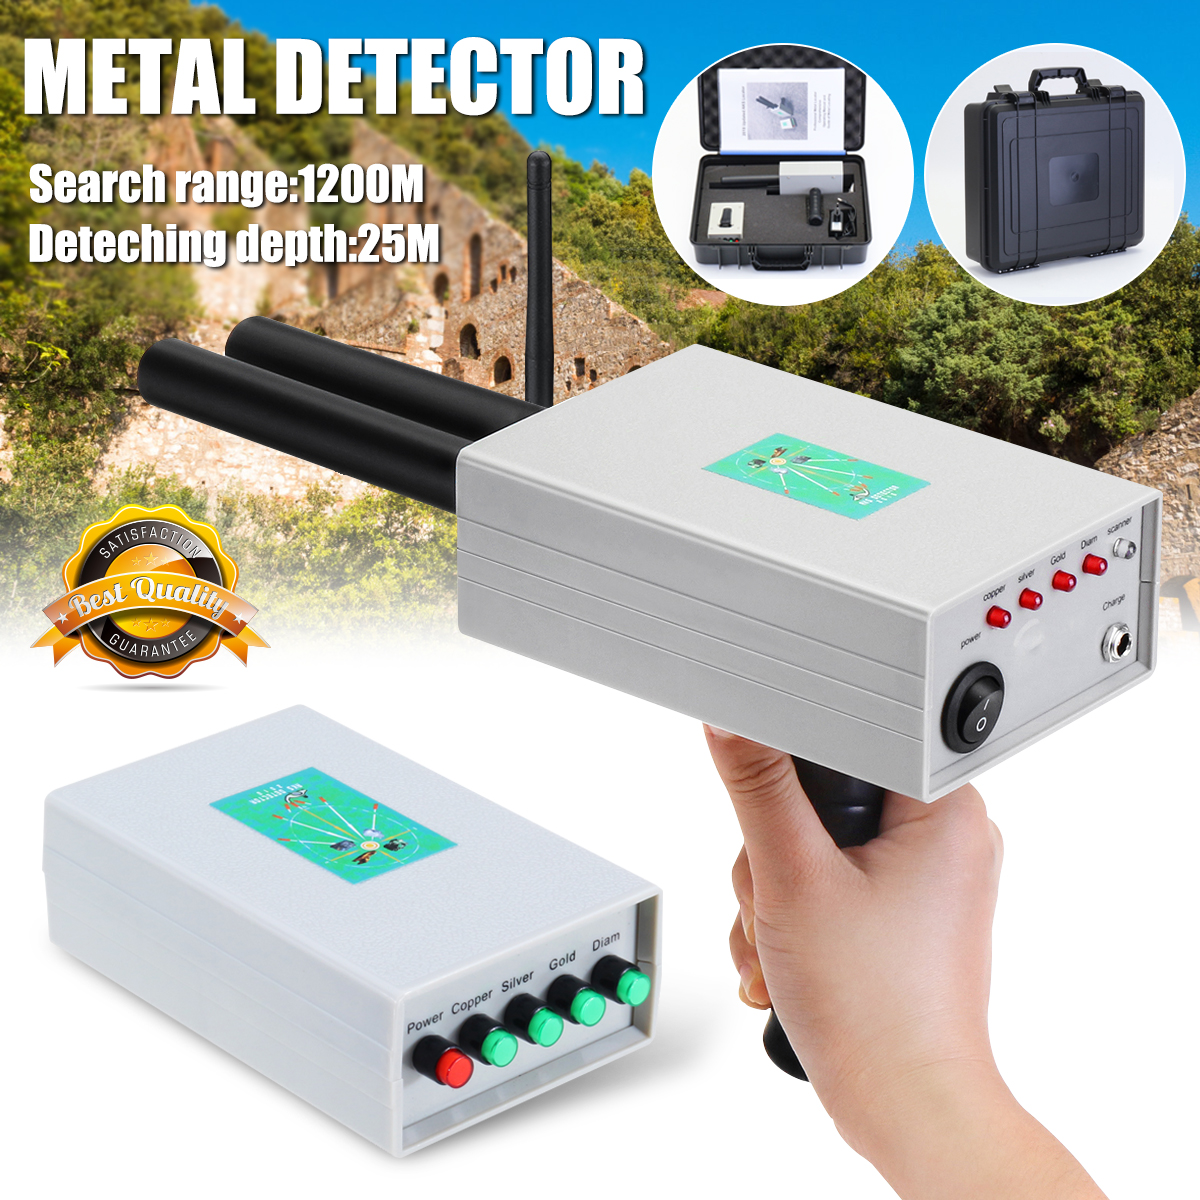 Newest Metal Detector Professtional Underground Gold Silver Detectors Treasure Hunter Tracker Seeker Metal Detector professtional md 4040 underground metal detector adjustable gold detectors treasure hunter tracker seeker metal circuit detector